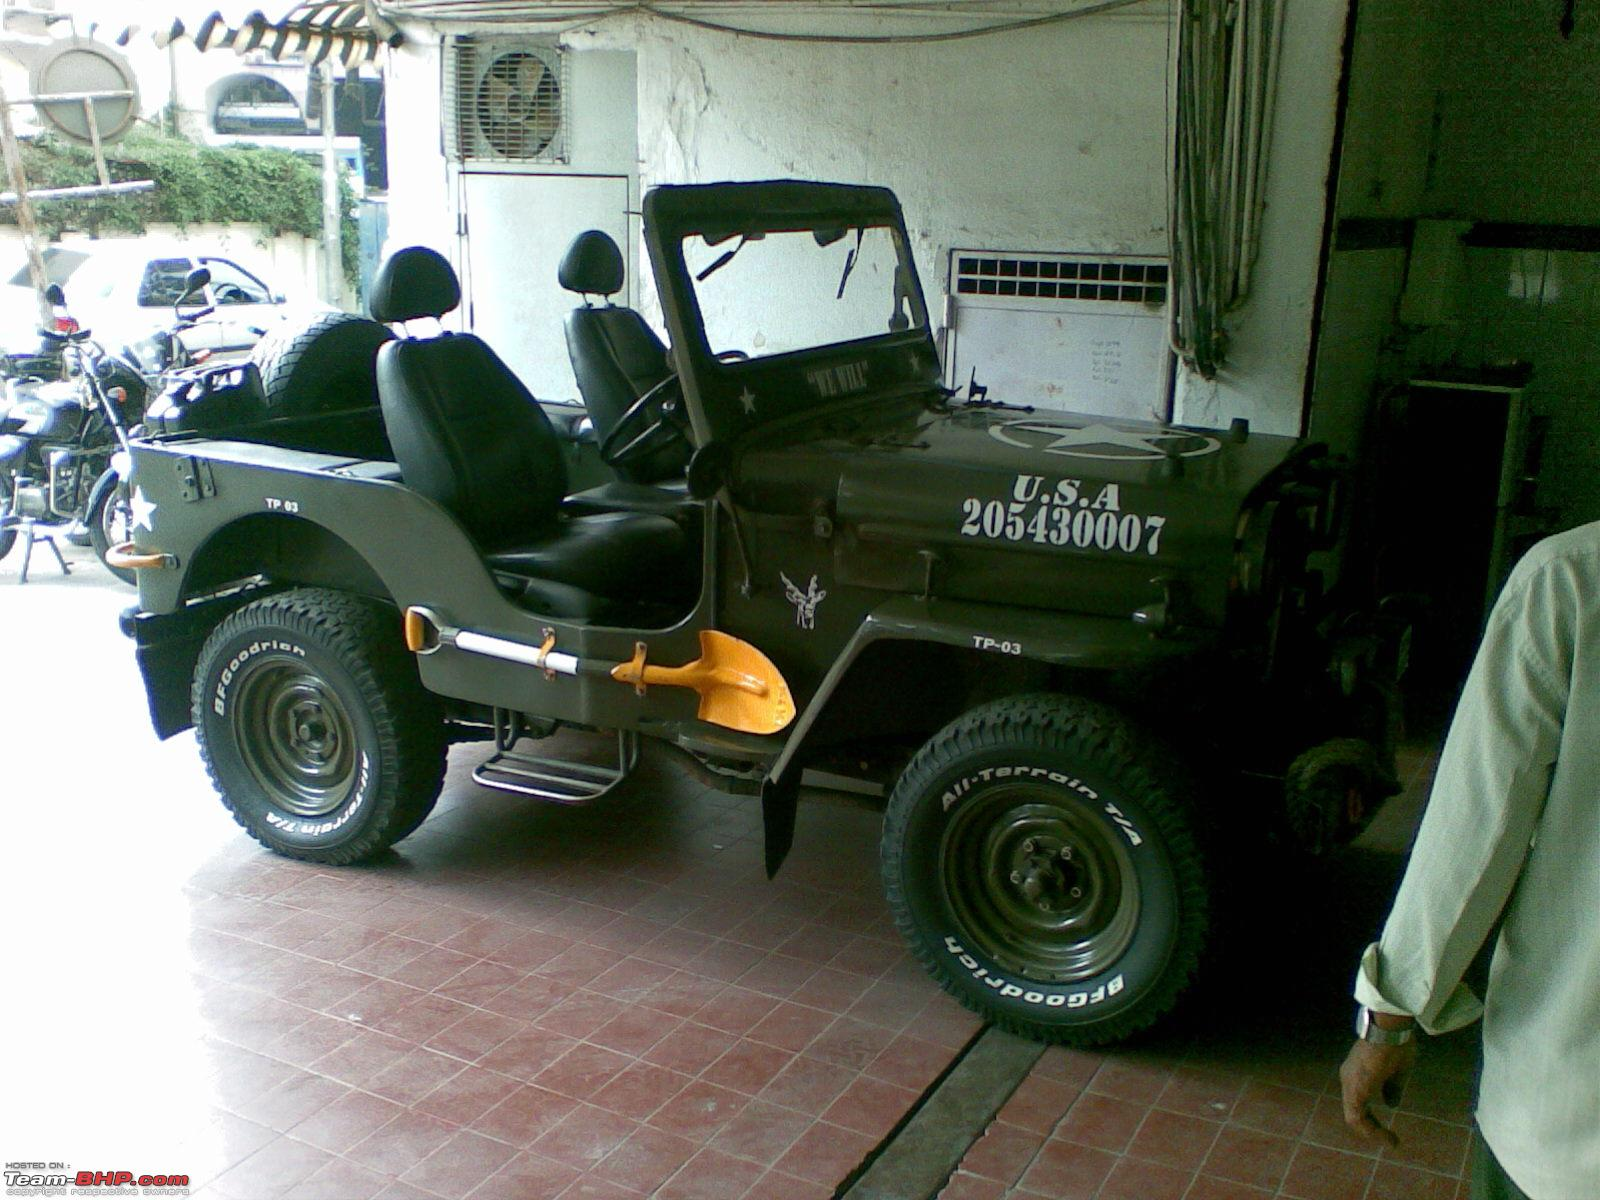 some pics of a vicious looking jeep us army look alike high bonnet team bhp. Black Bedroom Furniture Sets. Home Design Ideas